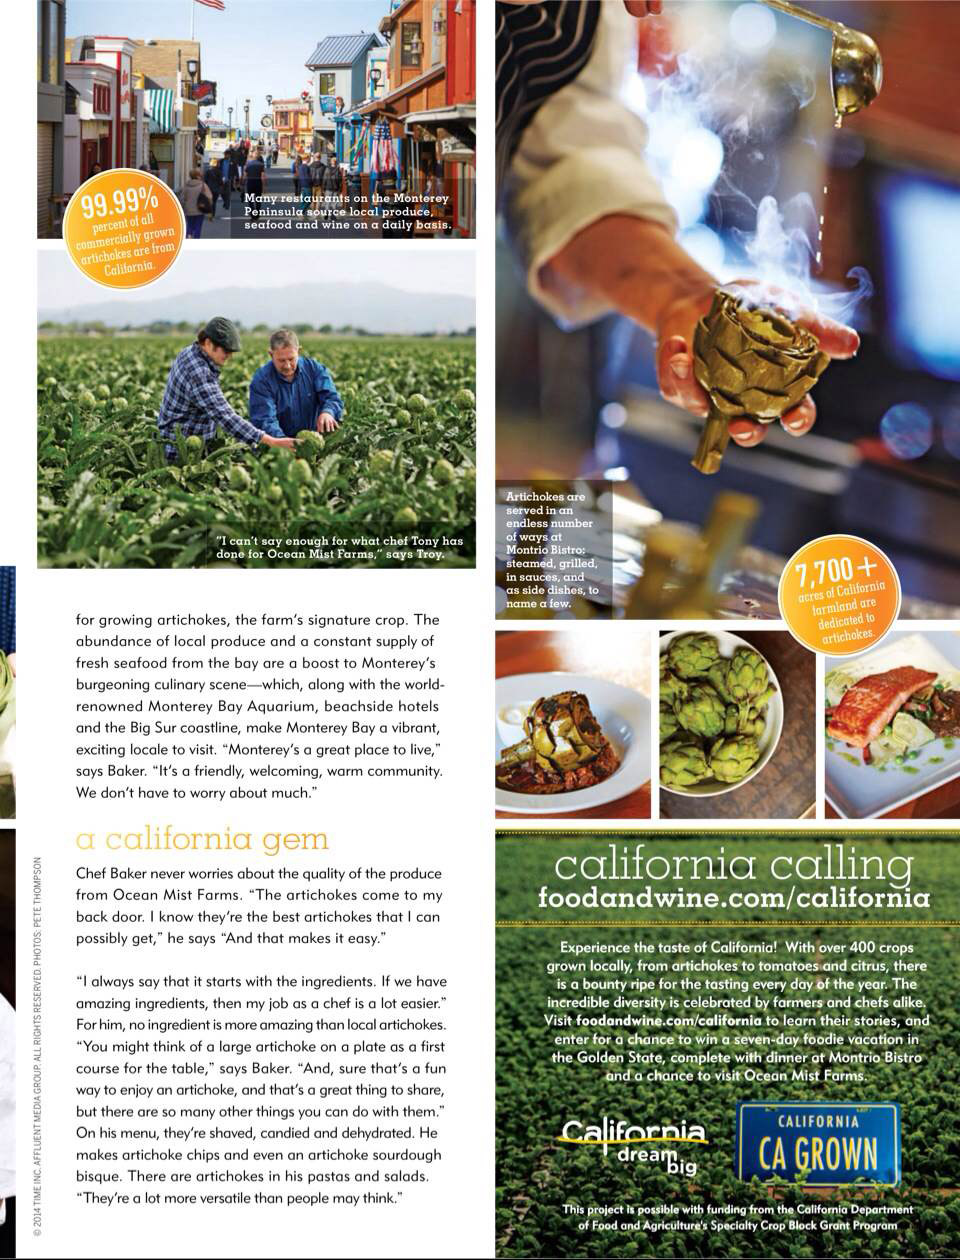 Image of Food and Wine issue about Tony Baker